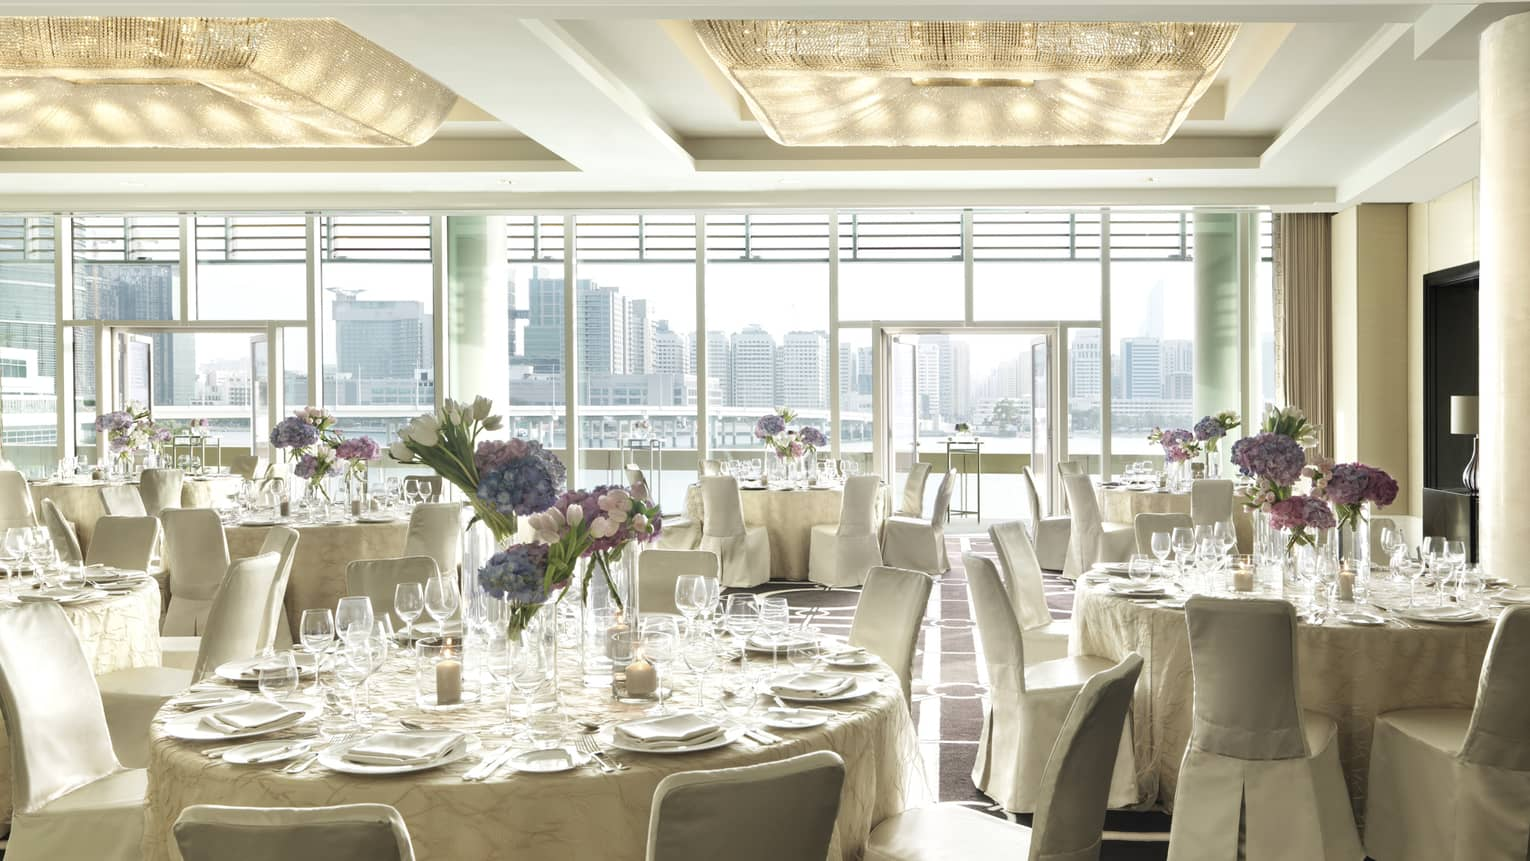 Sunny Liwa Ballroom with floor-to-ceiling window, round banquet tables with white linens, chairs